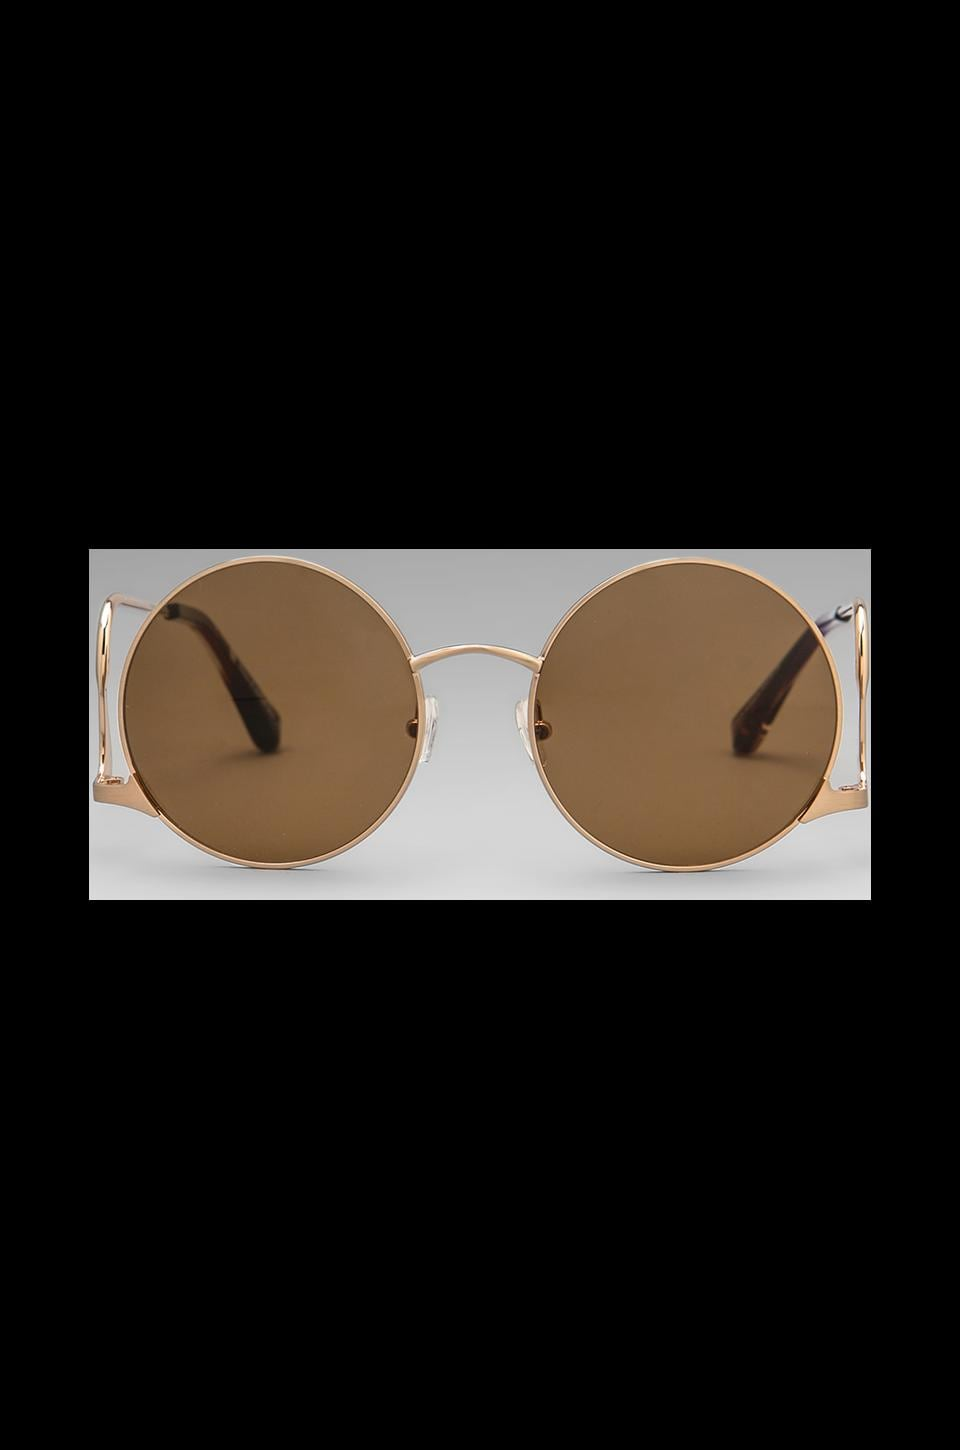 House of Harlow Layla Sunglasses in Rosegold